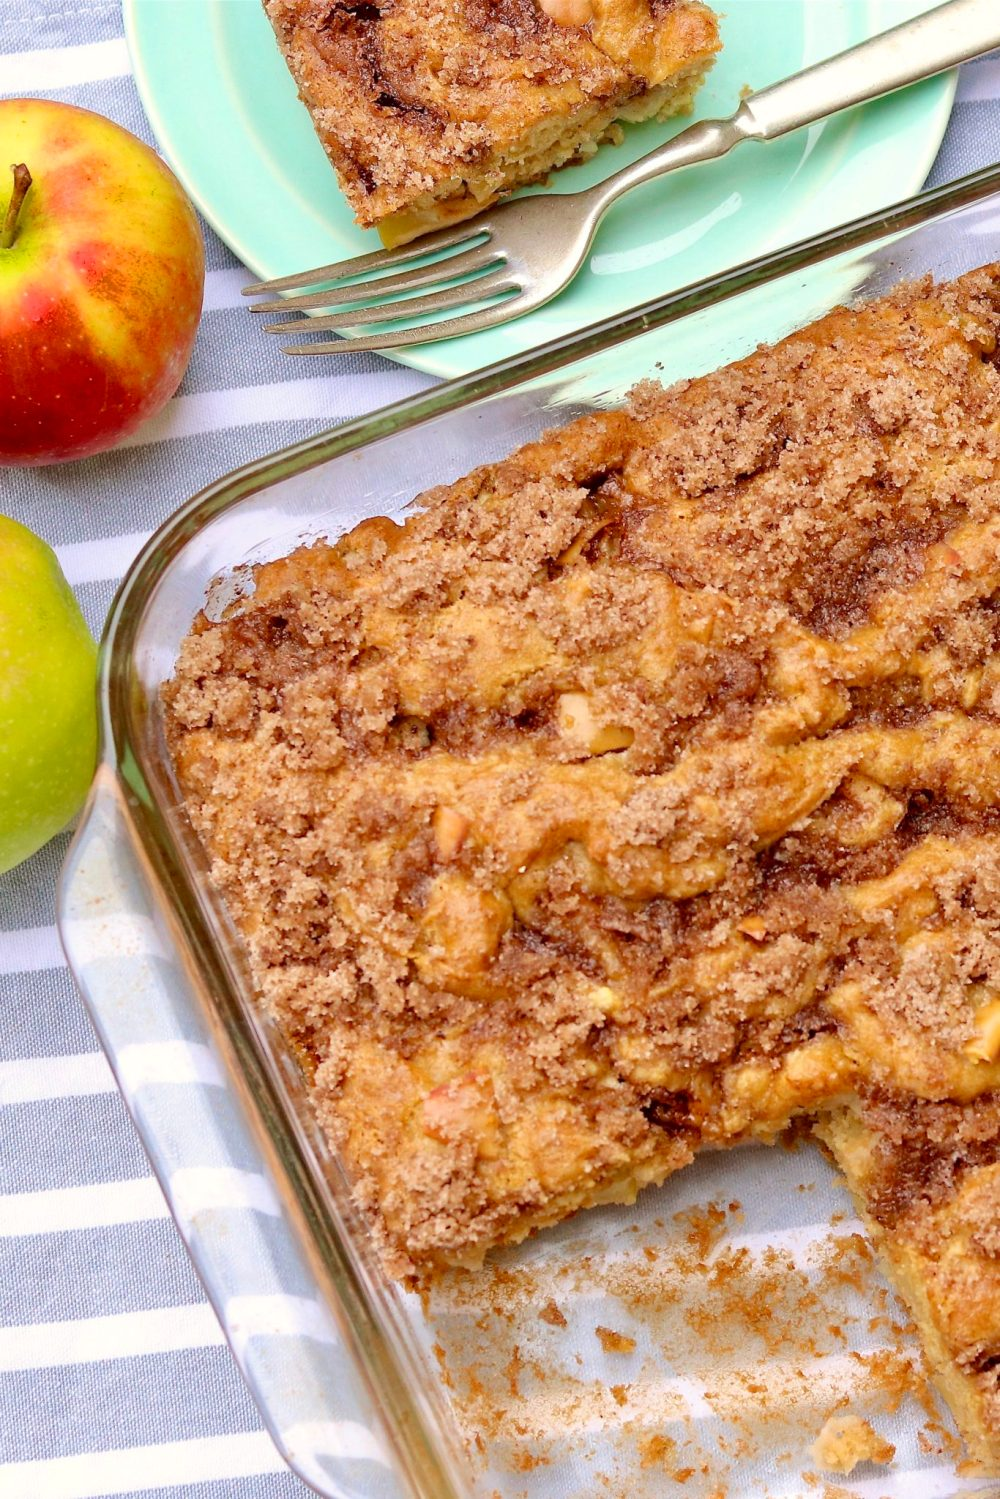 APPLE CRUMB CAKE - a go-to dessert forfall and winter, from holiday meals and casual entertaining to easy weeknight desserts-AND itpasses as coffee cake!